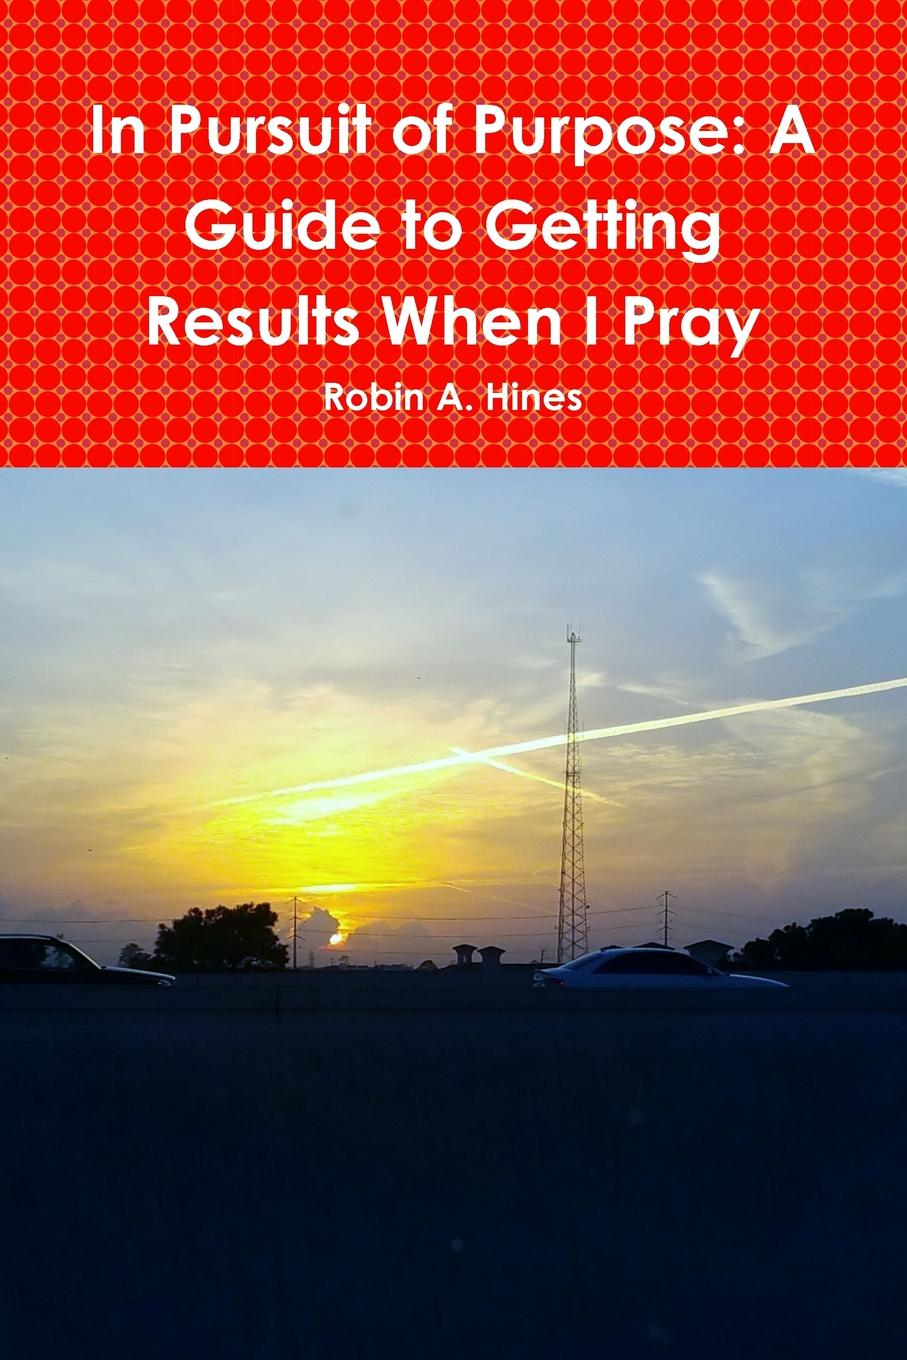 Robin A. Hines In Pursuit of Purpose. A Guide to Getting Results When I Pray robin a hines in pursuit of purpose a guide to getting results when i pray